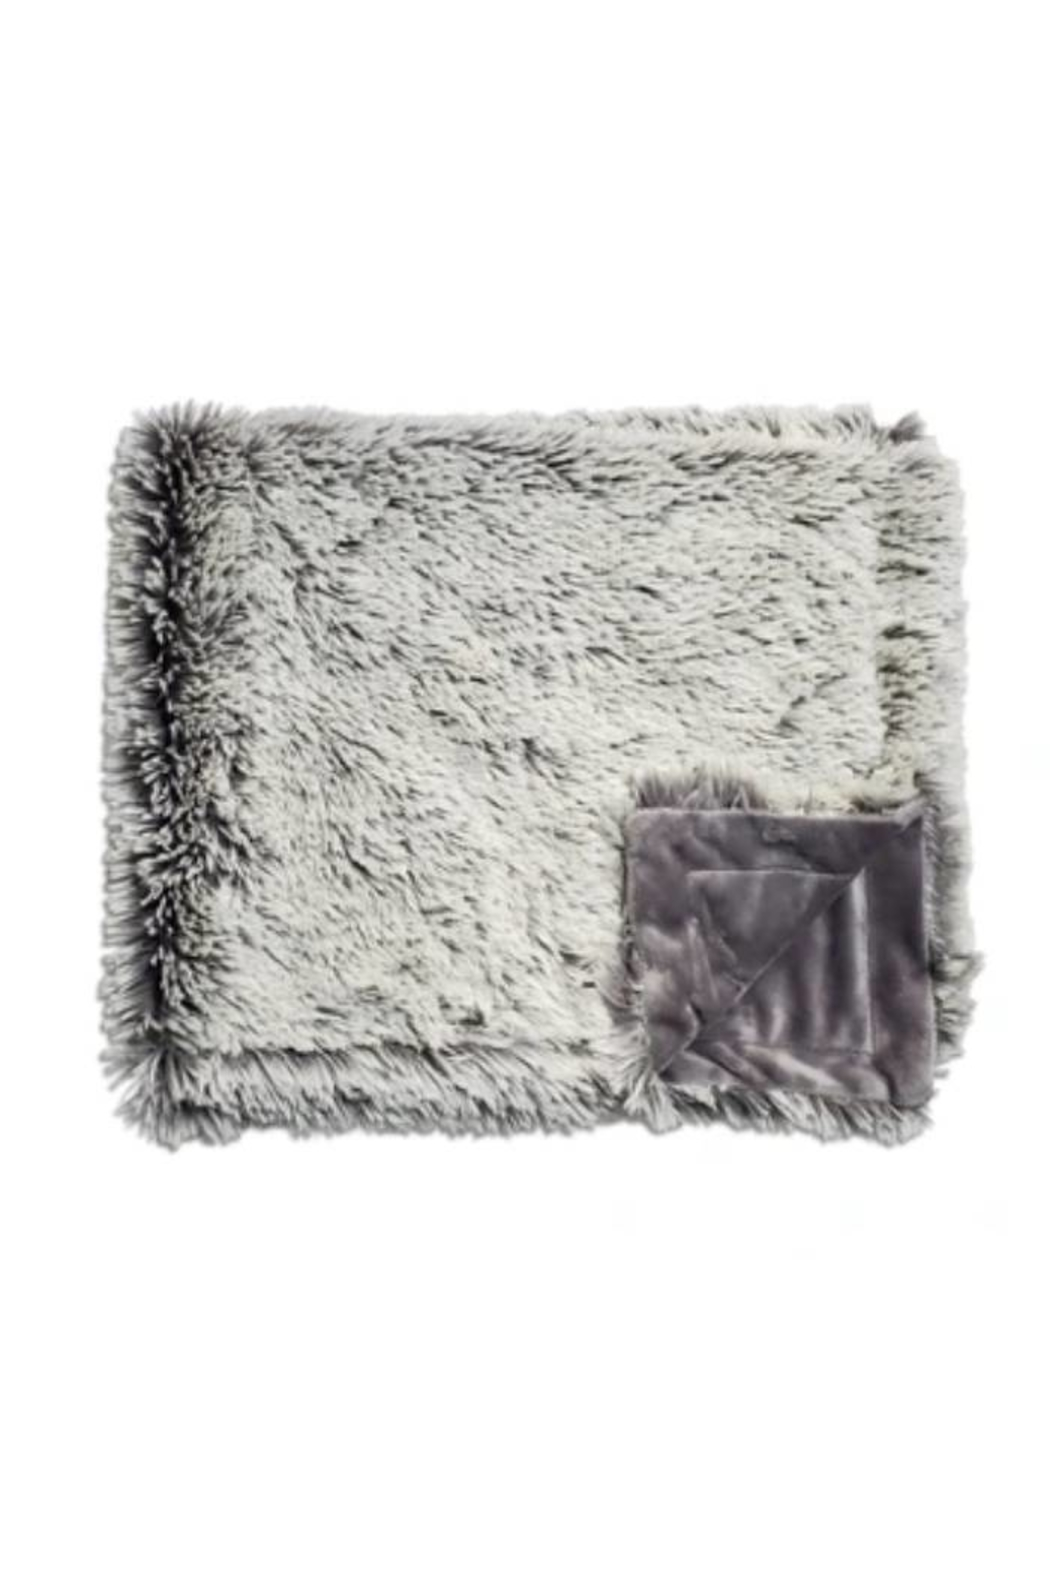 Winx+Blinx Shaggy Frosted Charcoal Grey Minky Blanket (34 X 29 Inches)for Newborn Baby Boys Girls Winter Swaddle - Main Image